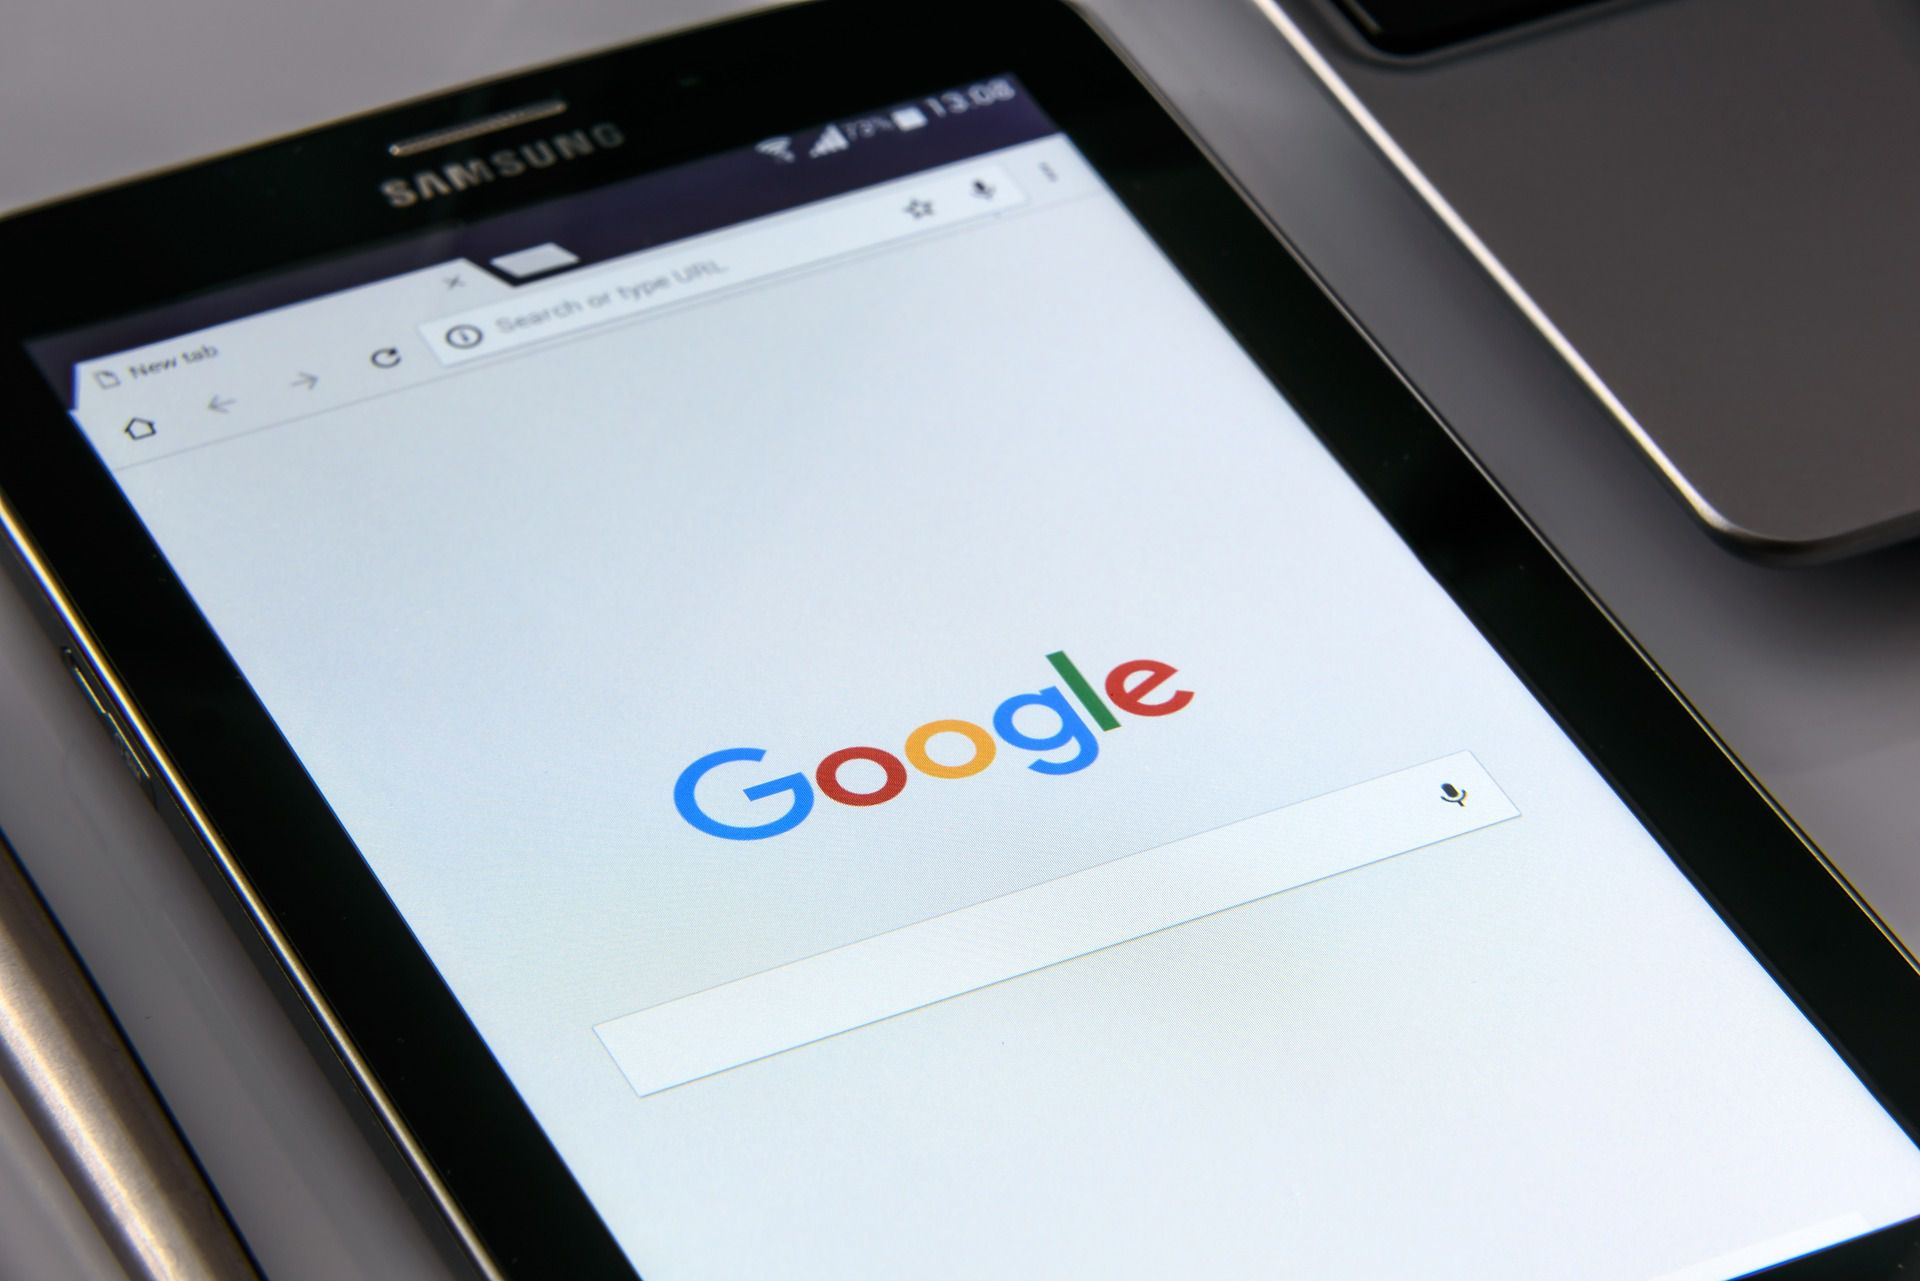 An image of Google Search on a smartphone.